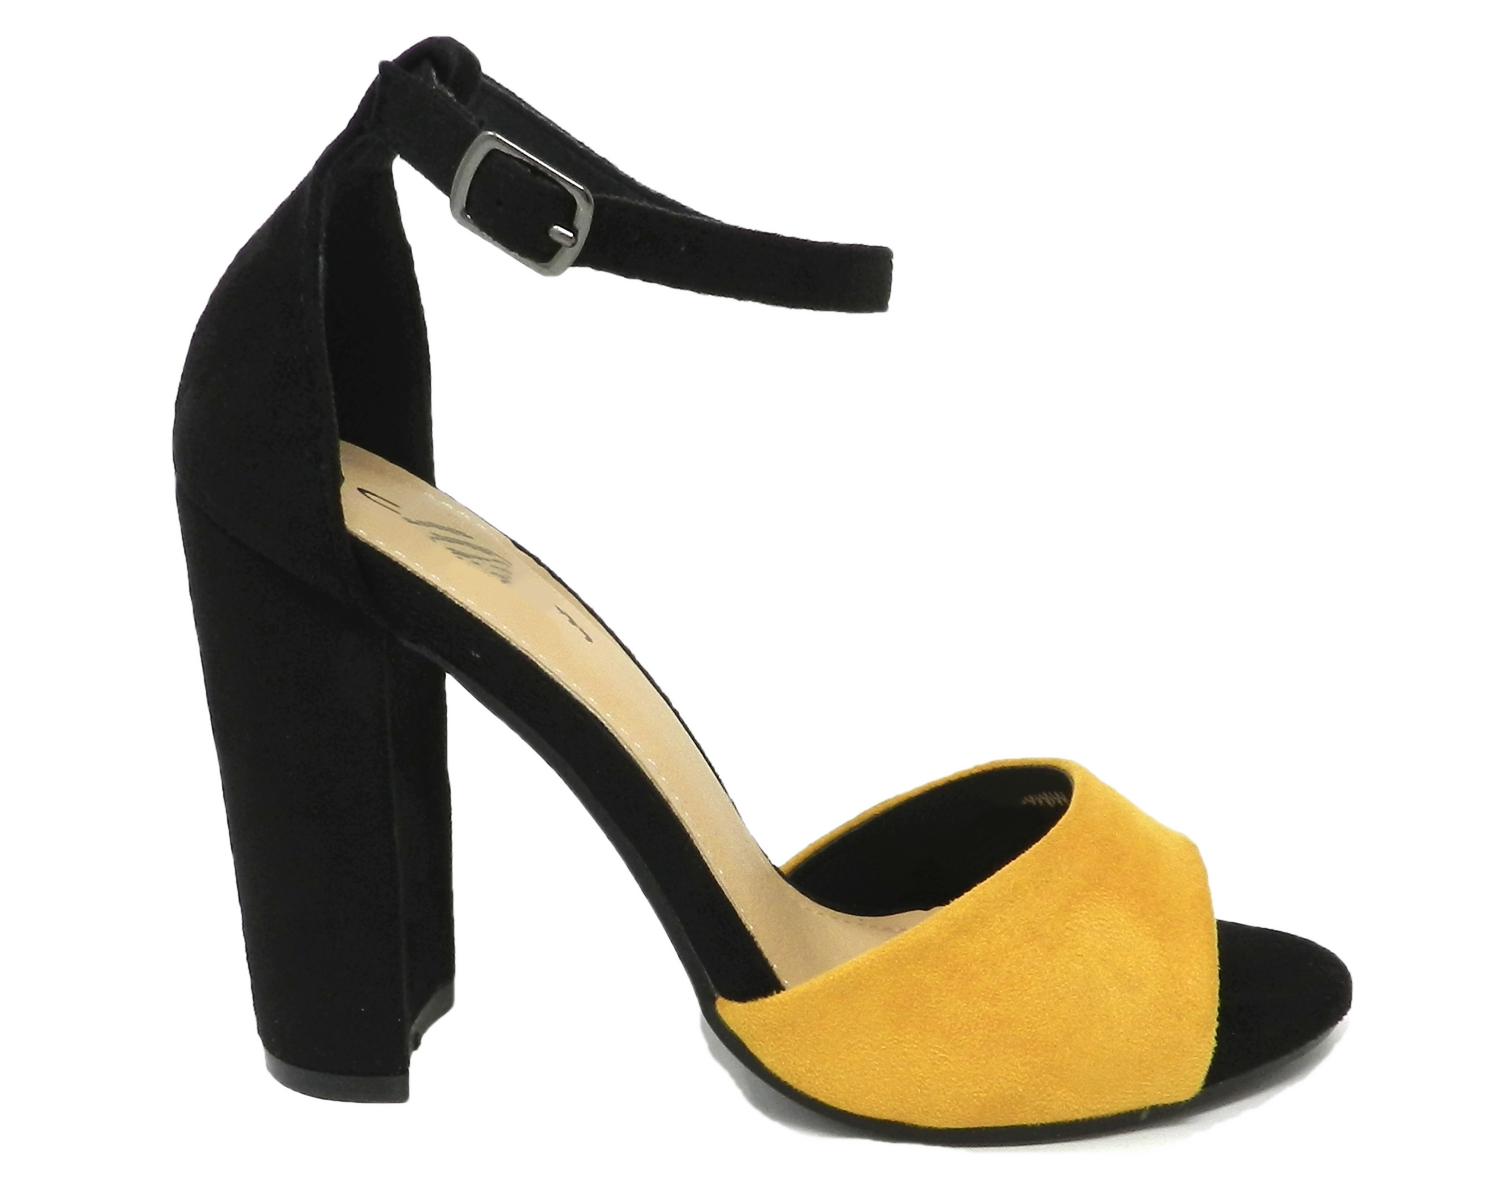 Seductive sandal women's faux leather suede two-tone - black yellow